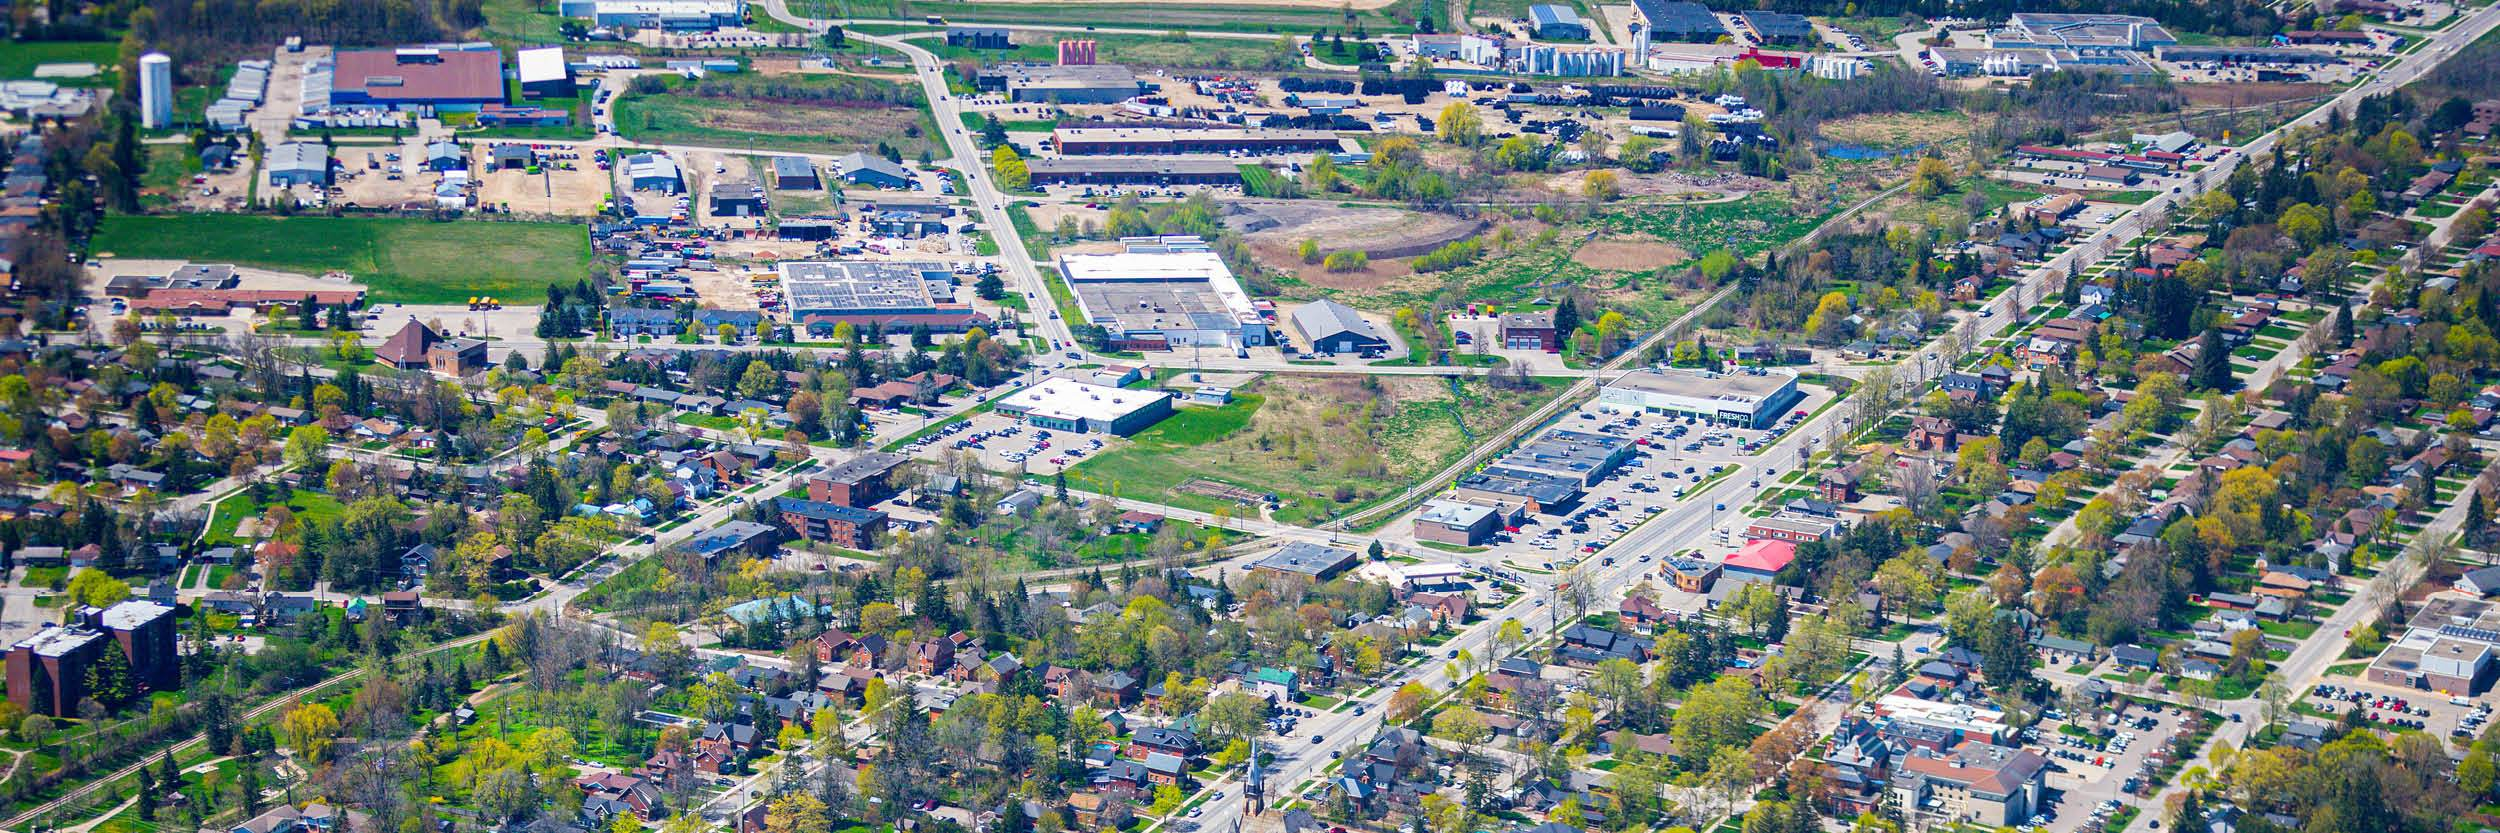 Aerial view of industrial buildings in Orangeville